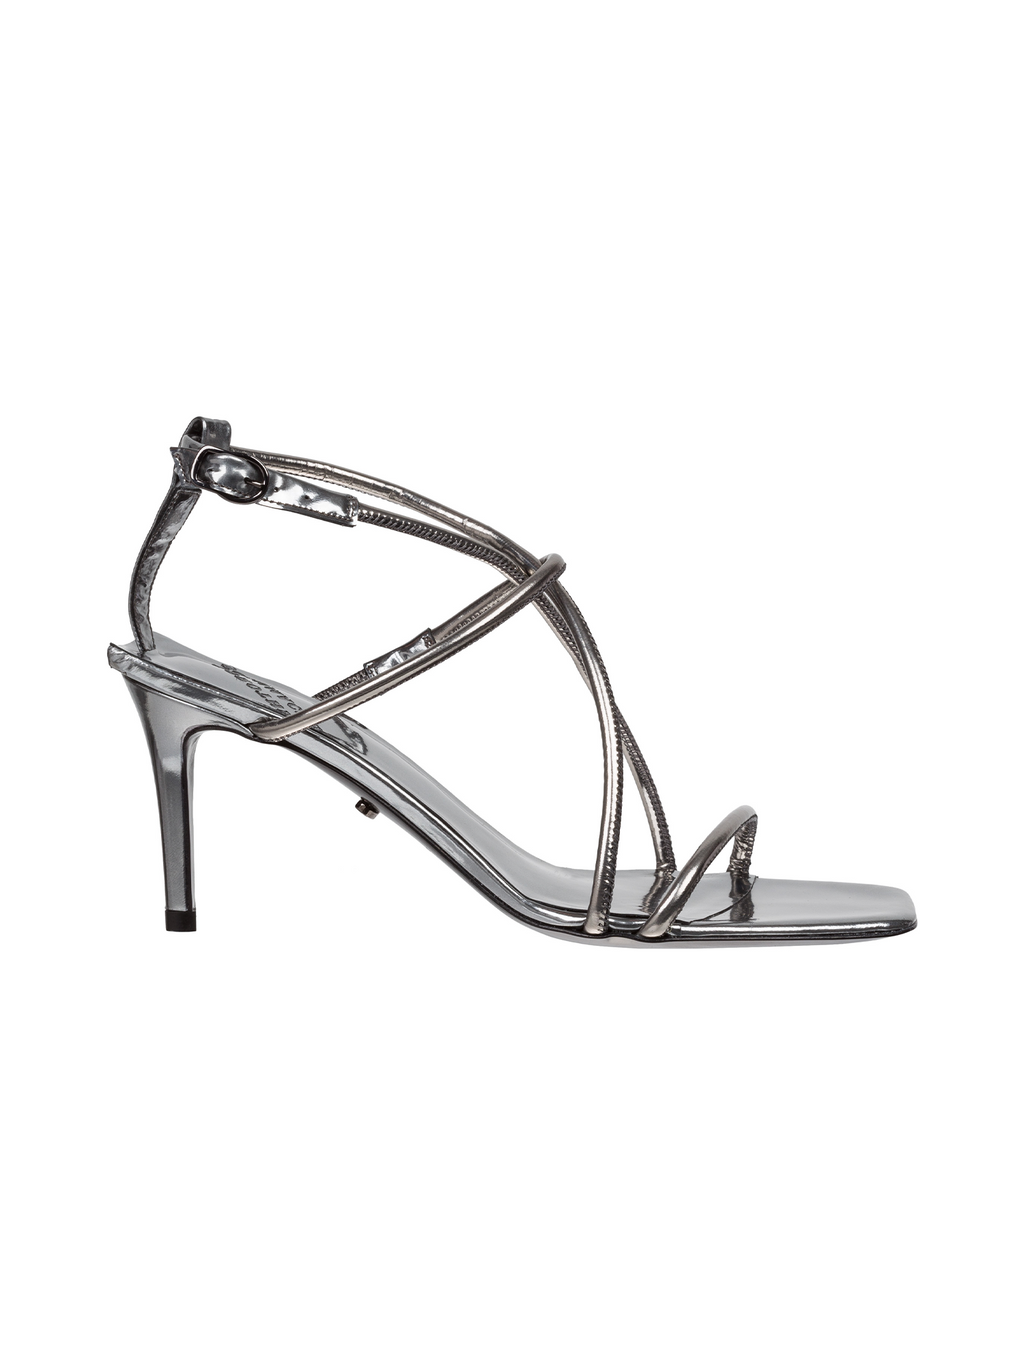 Dorothee Schumacher Power Statement Strappy Stiletto - Gunmetal